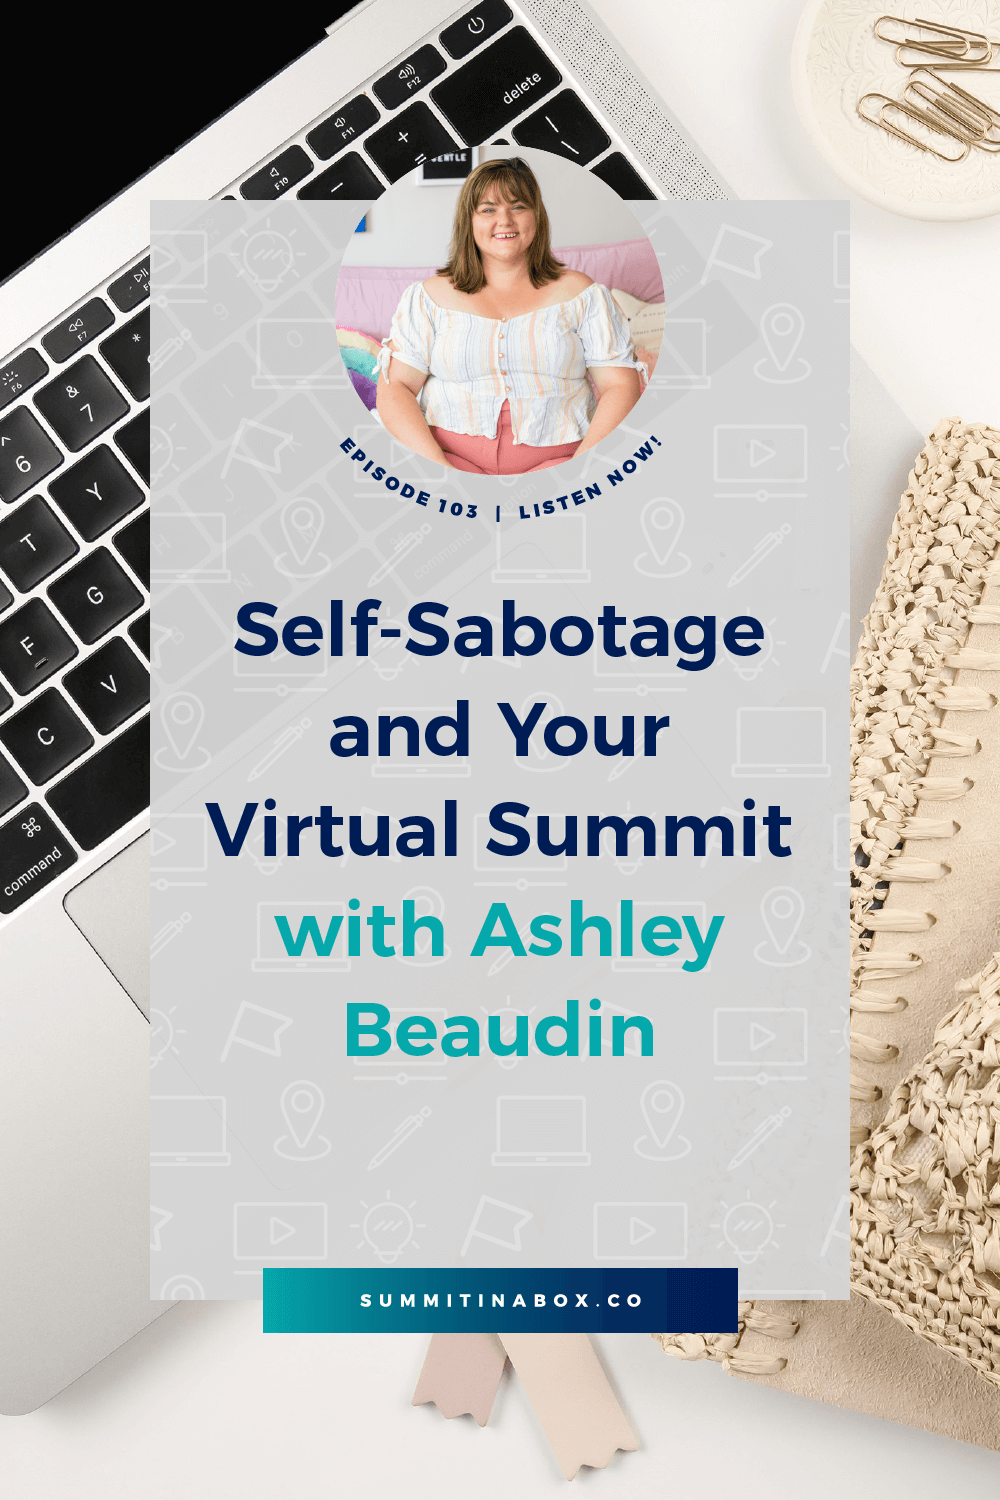 Hosting a virtual summit is intimidating and self-sabotage is common. Go from self-sabotage to self-support and go on to host a successful event with these tips!